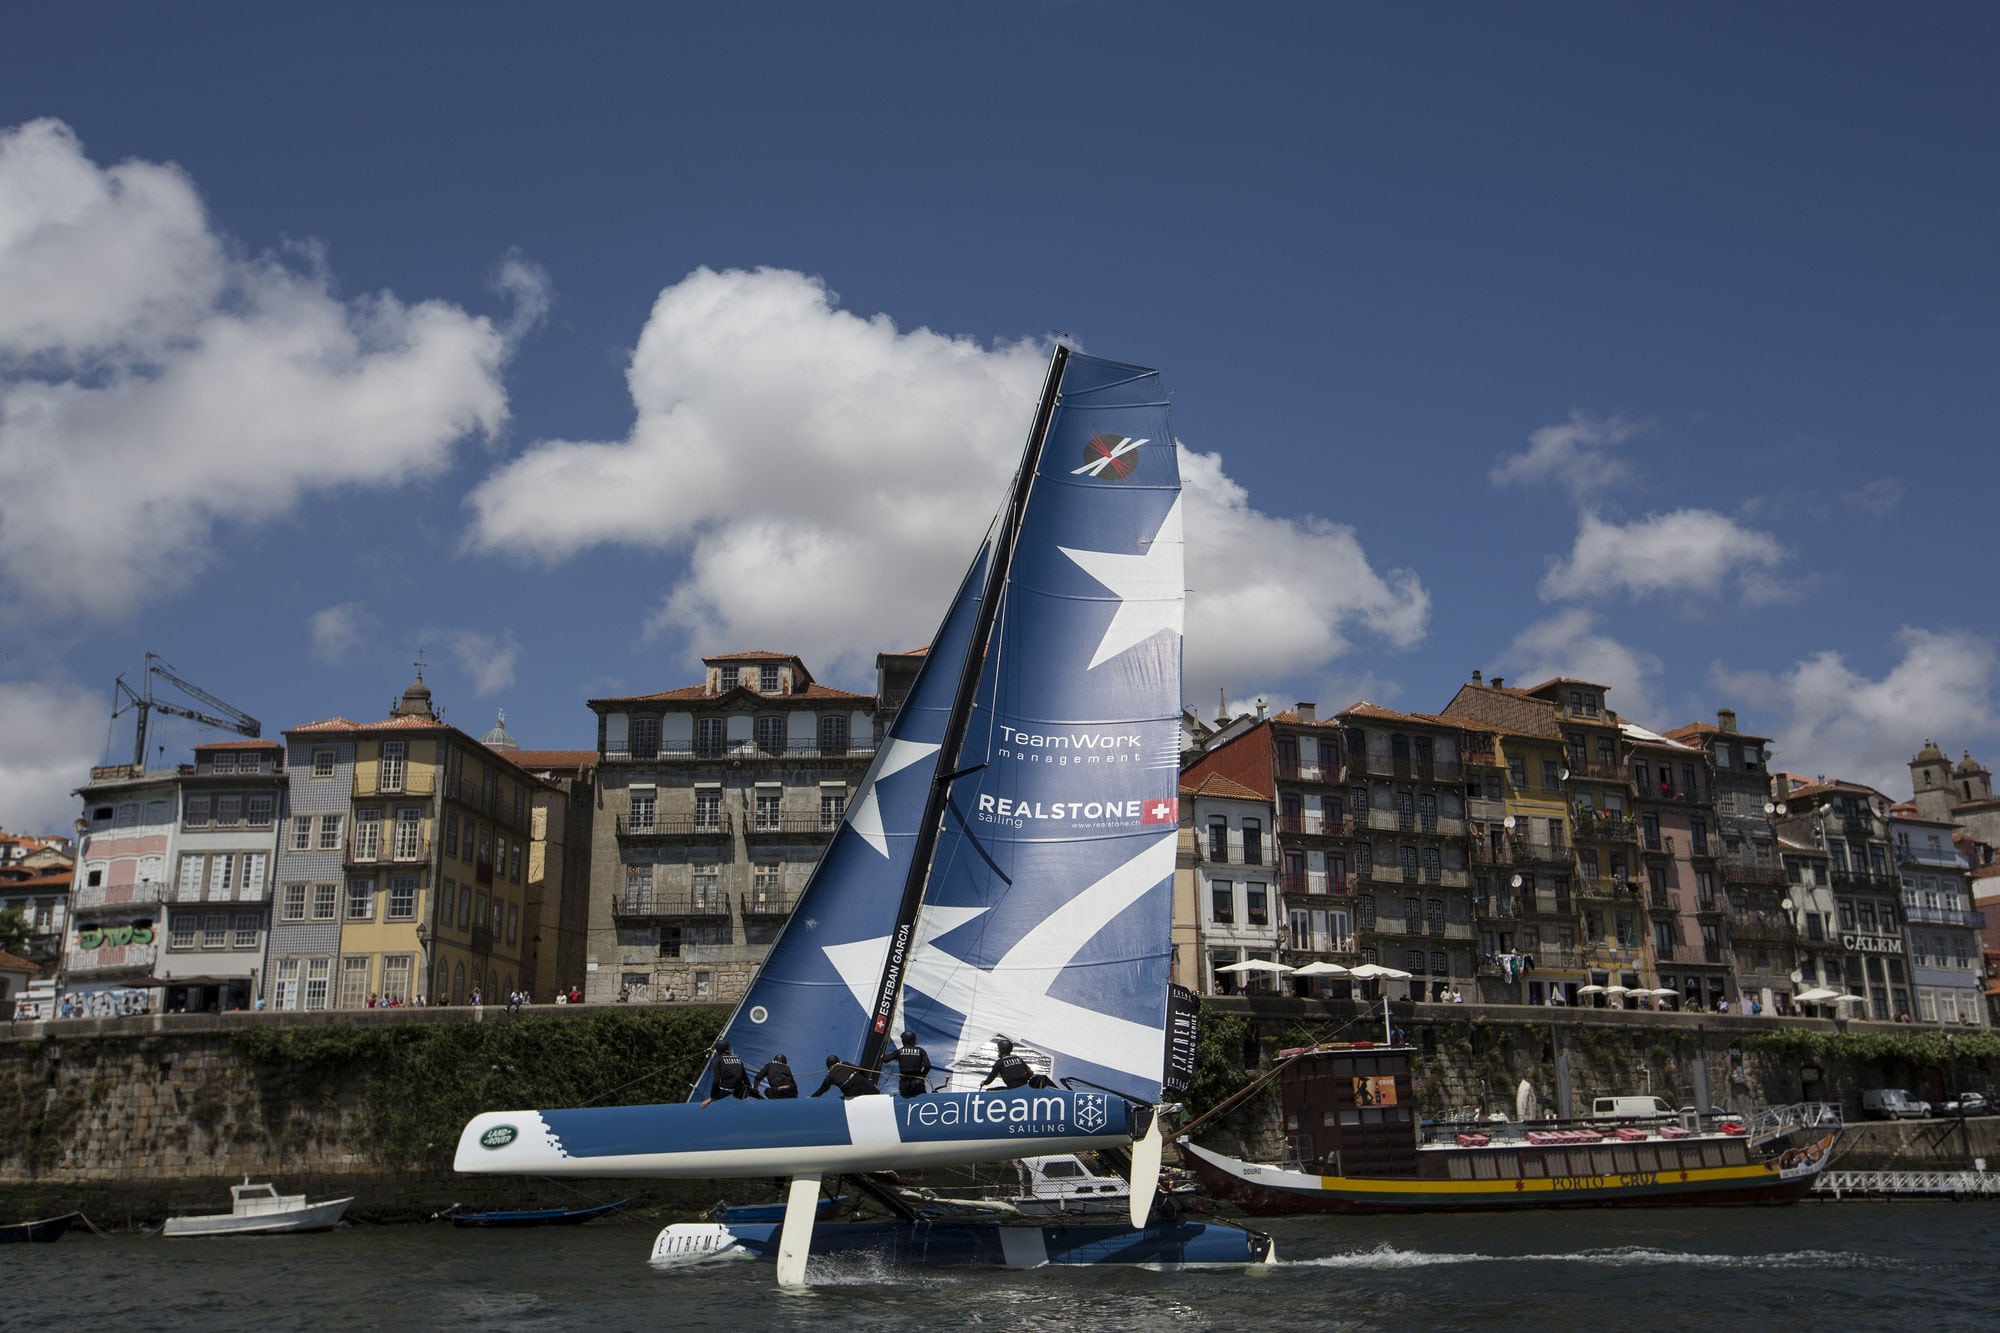 First international podium finish for Realteam at Porto Extreme Sailing Series